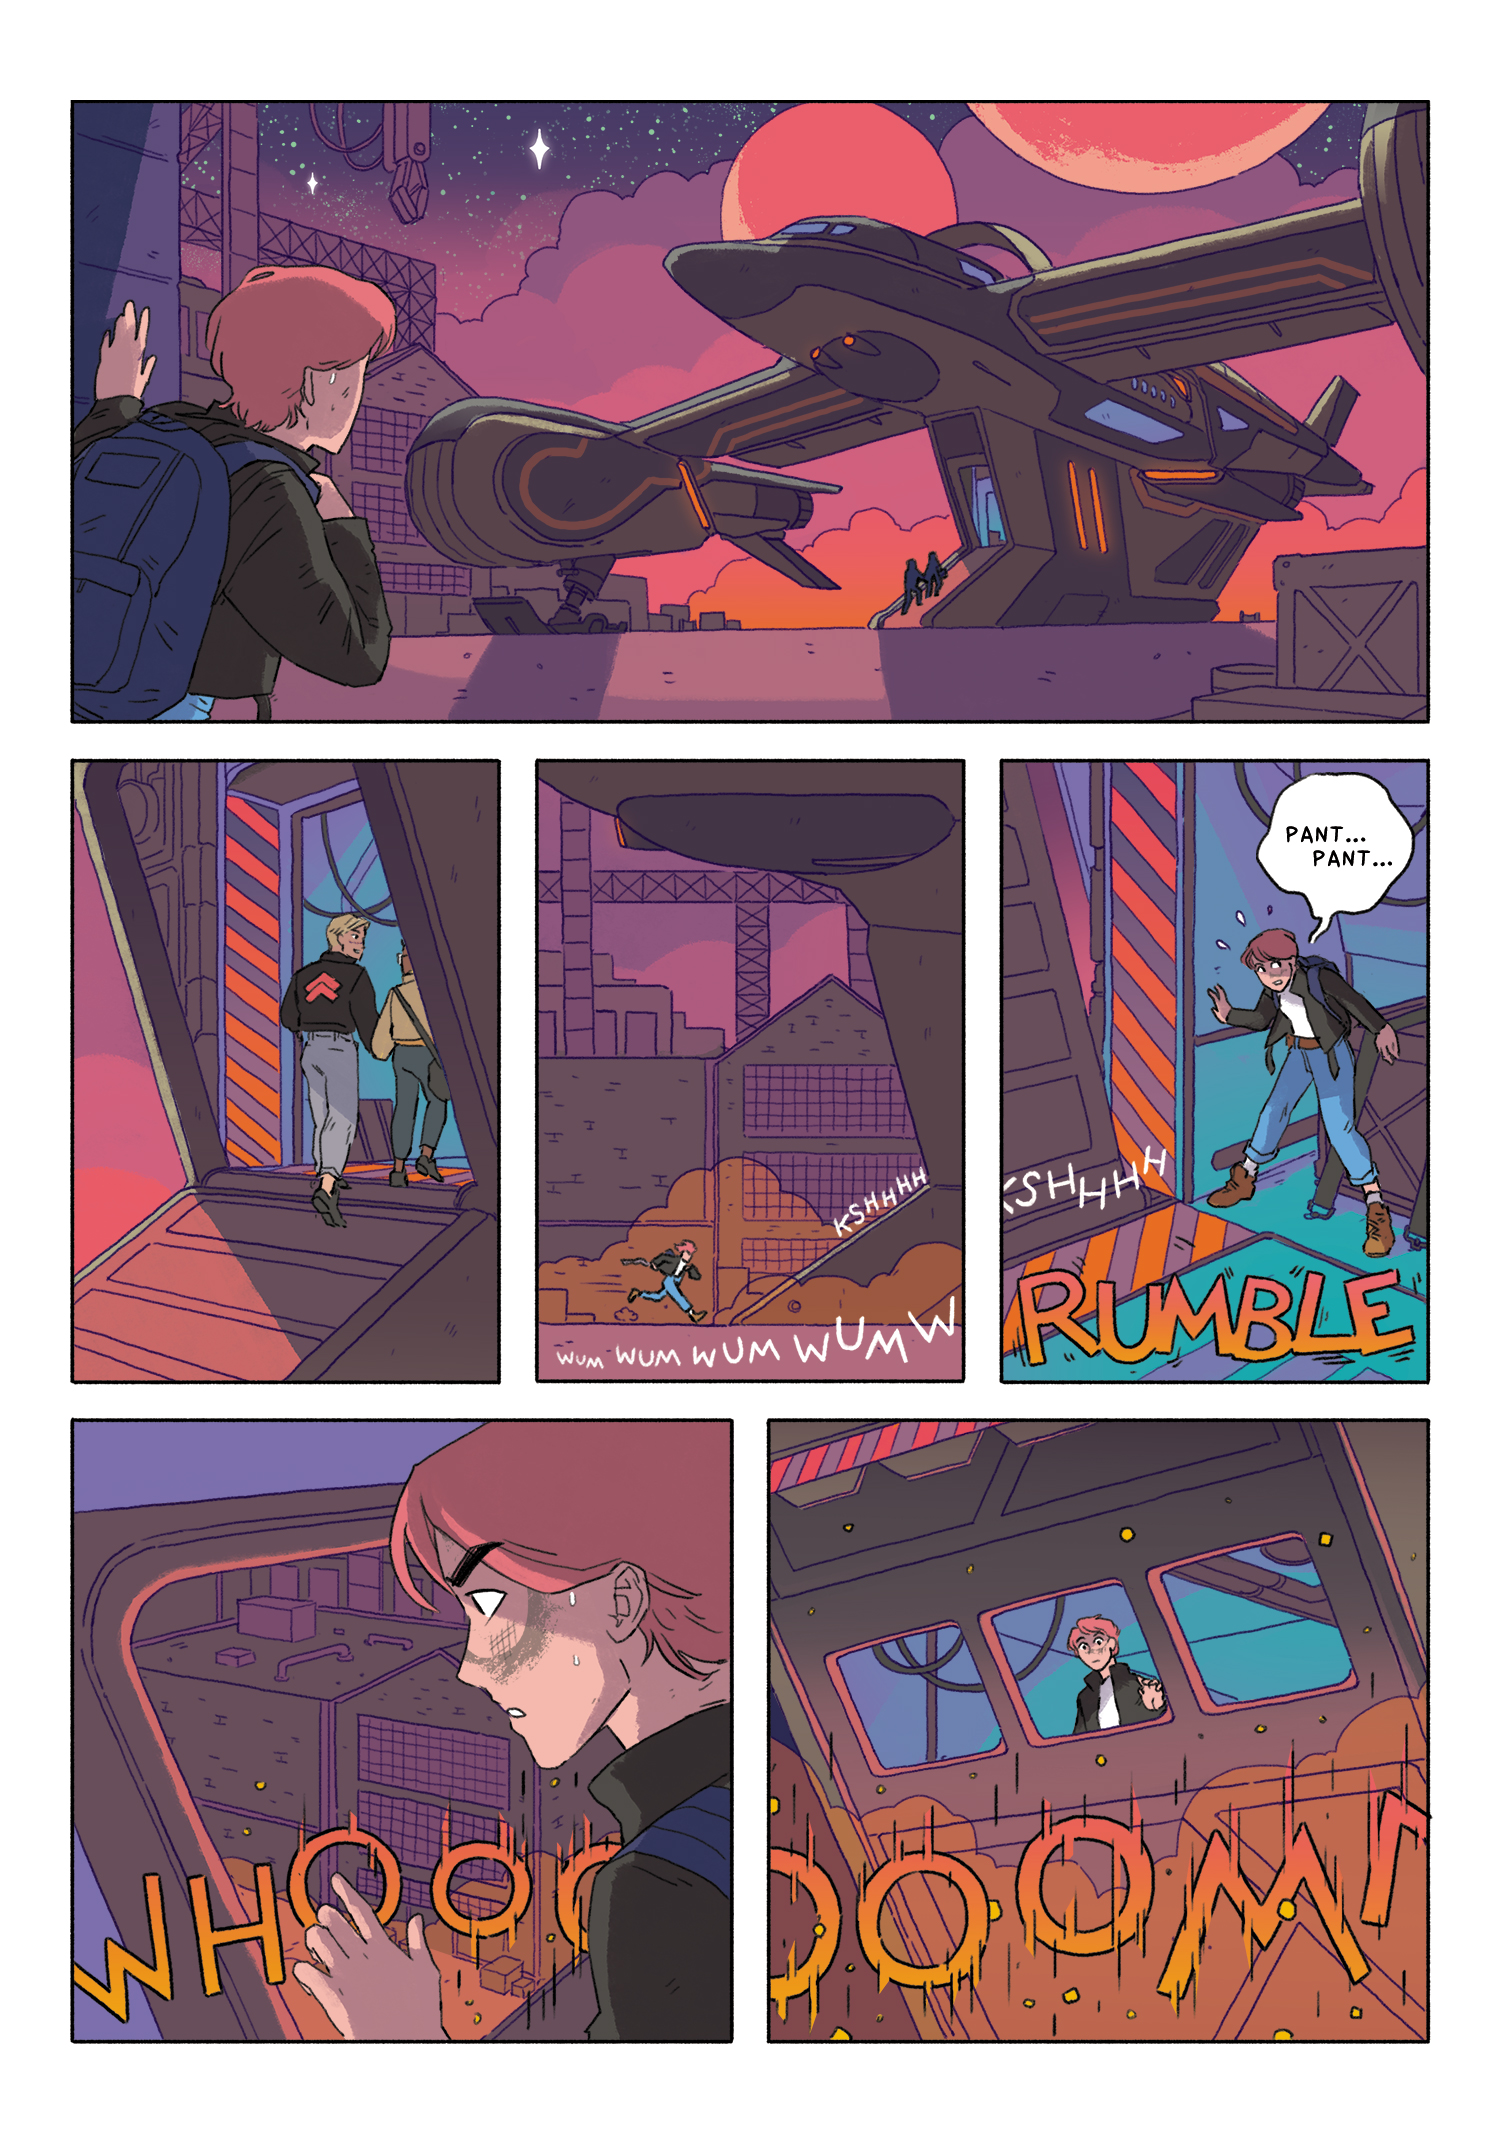 Page 67  - Cosmoknights  - Top Shelf Productions  Read the whole thing online at  cosmoknights.space